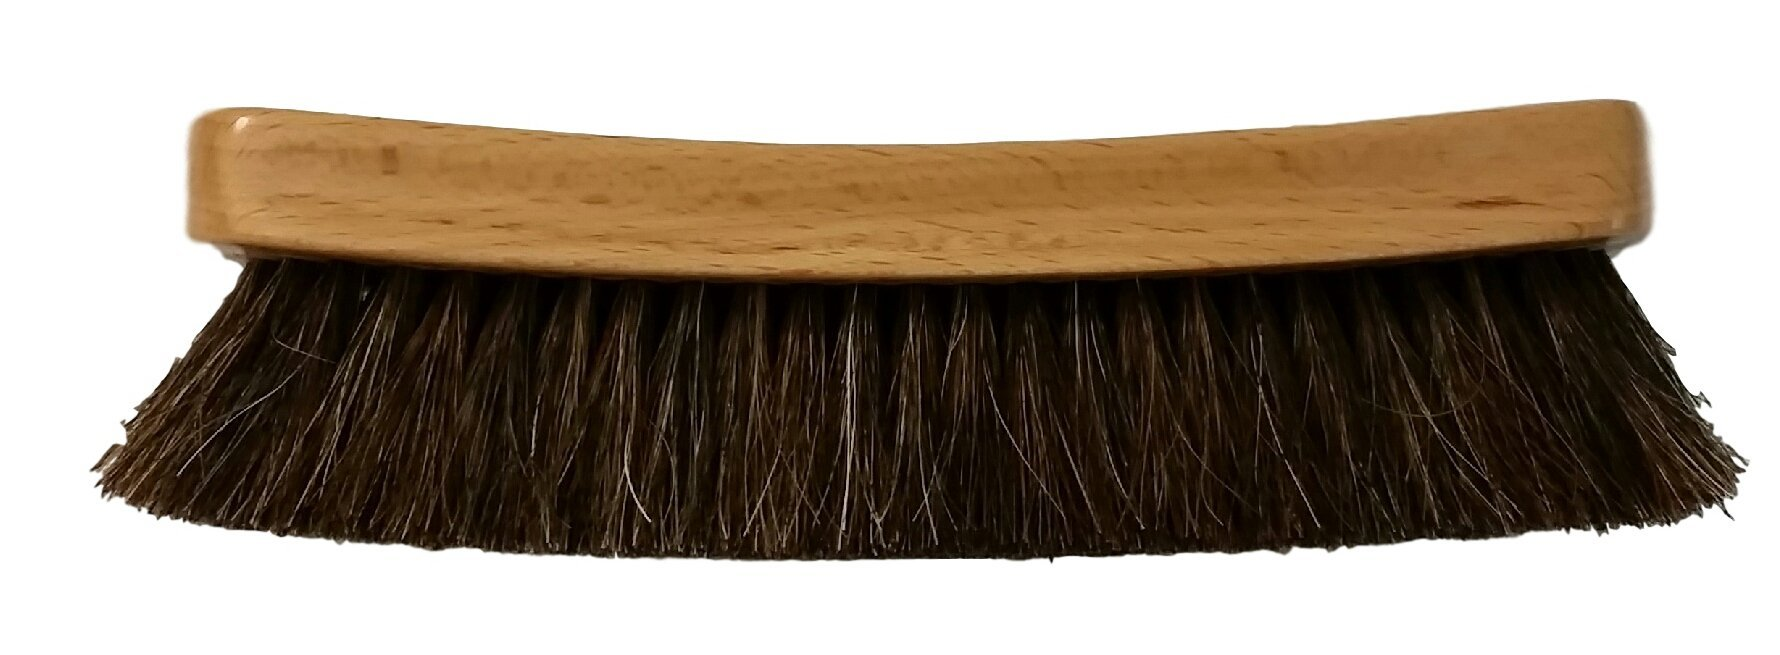 Large Professional Shoe/Boot Shine/Buff Brush - 8'' inch Long